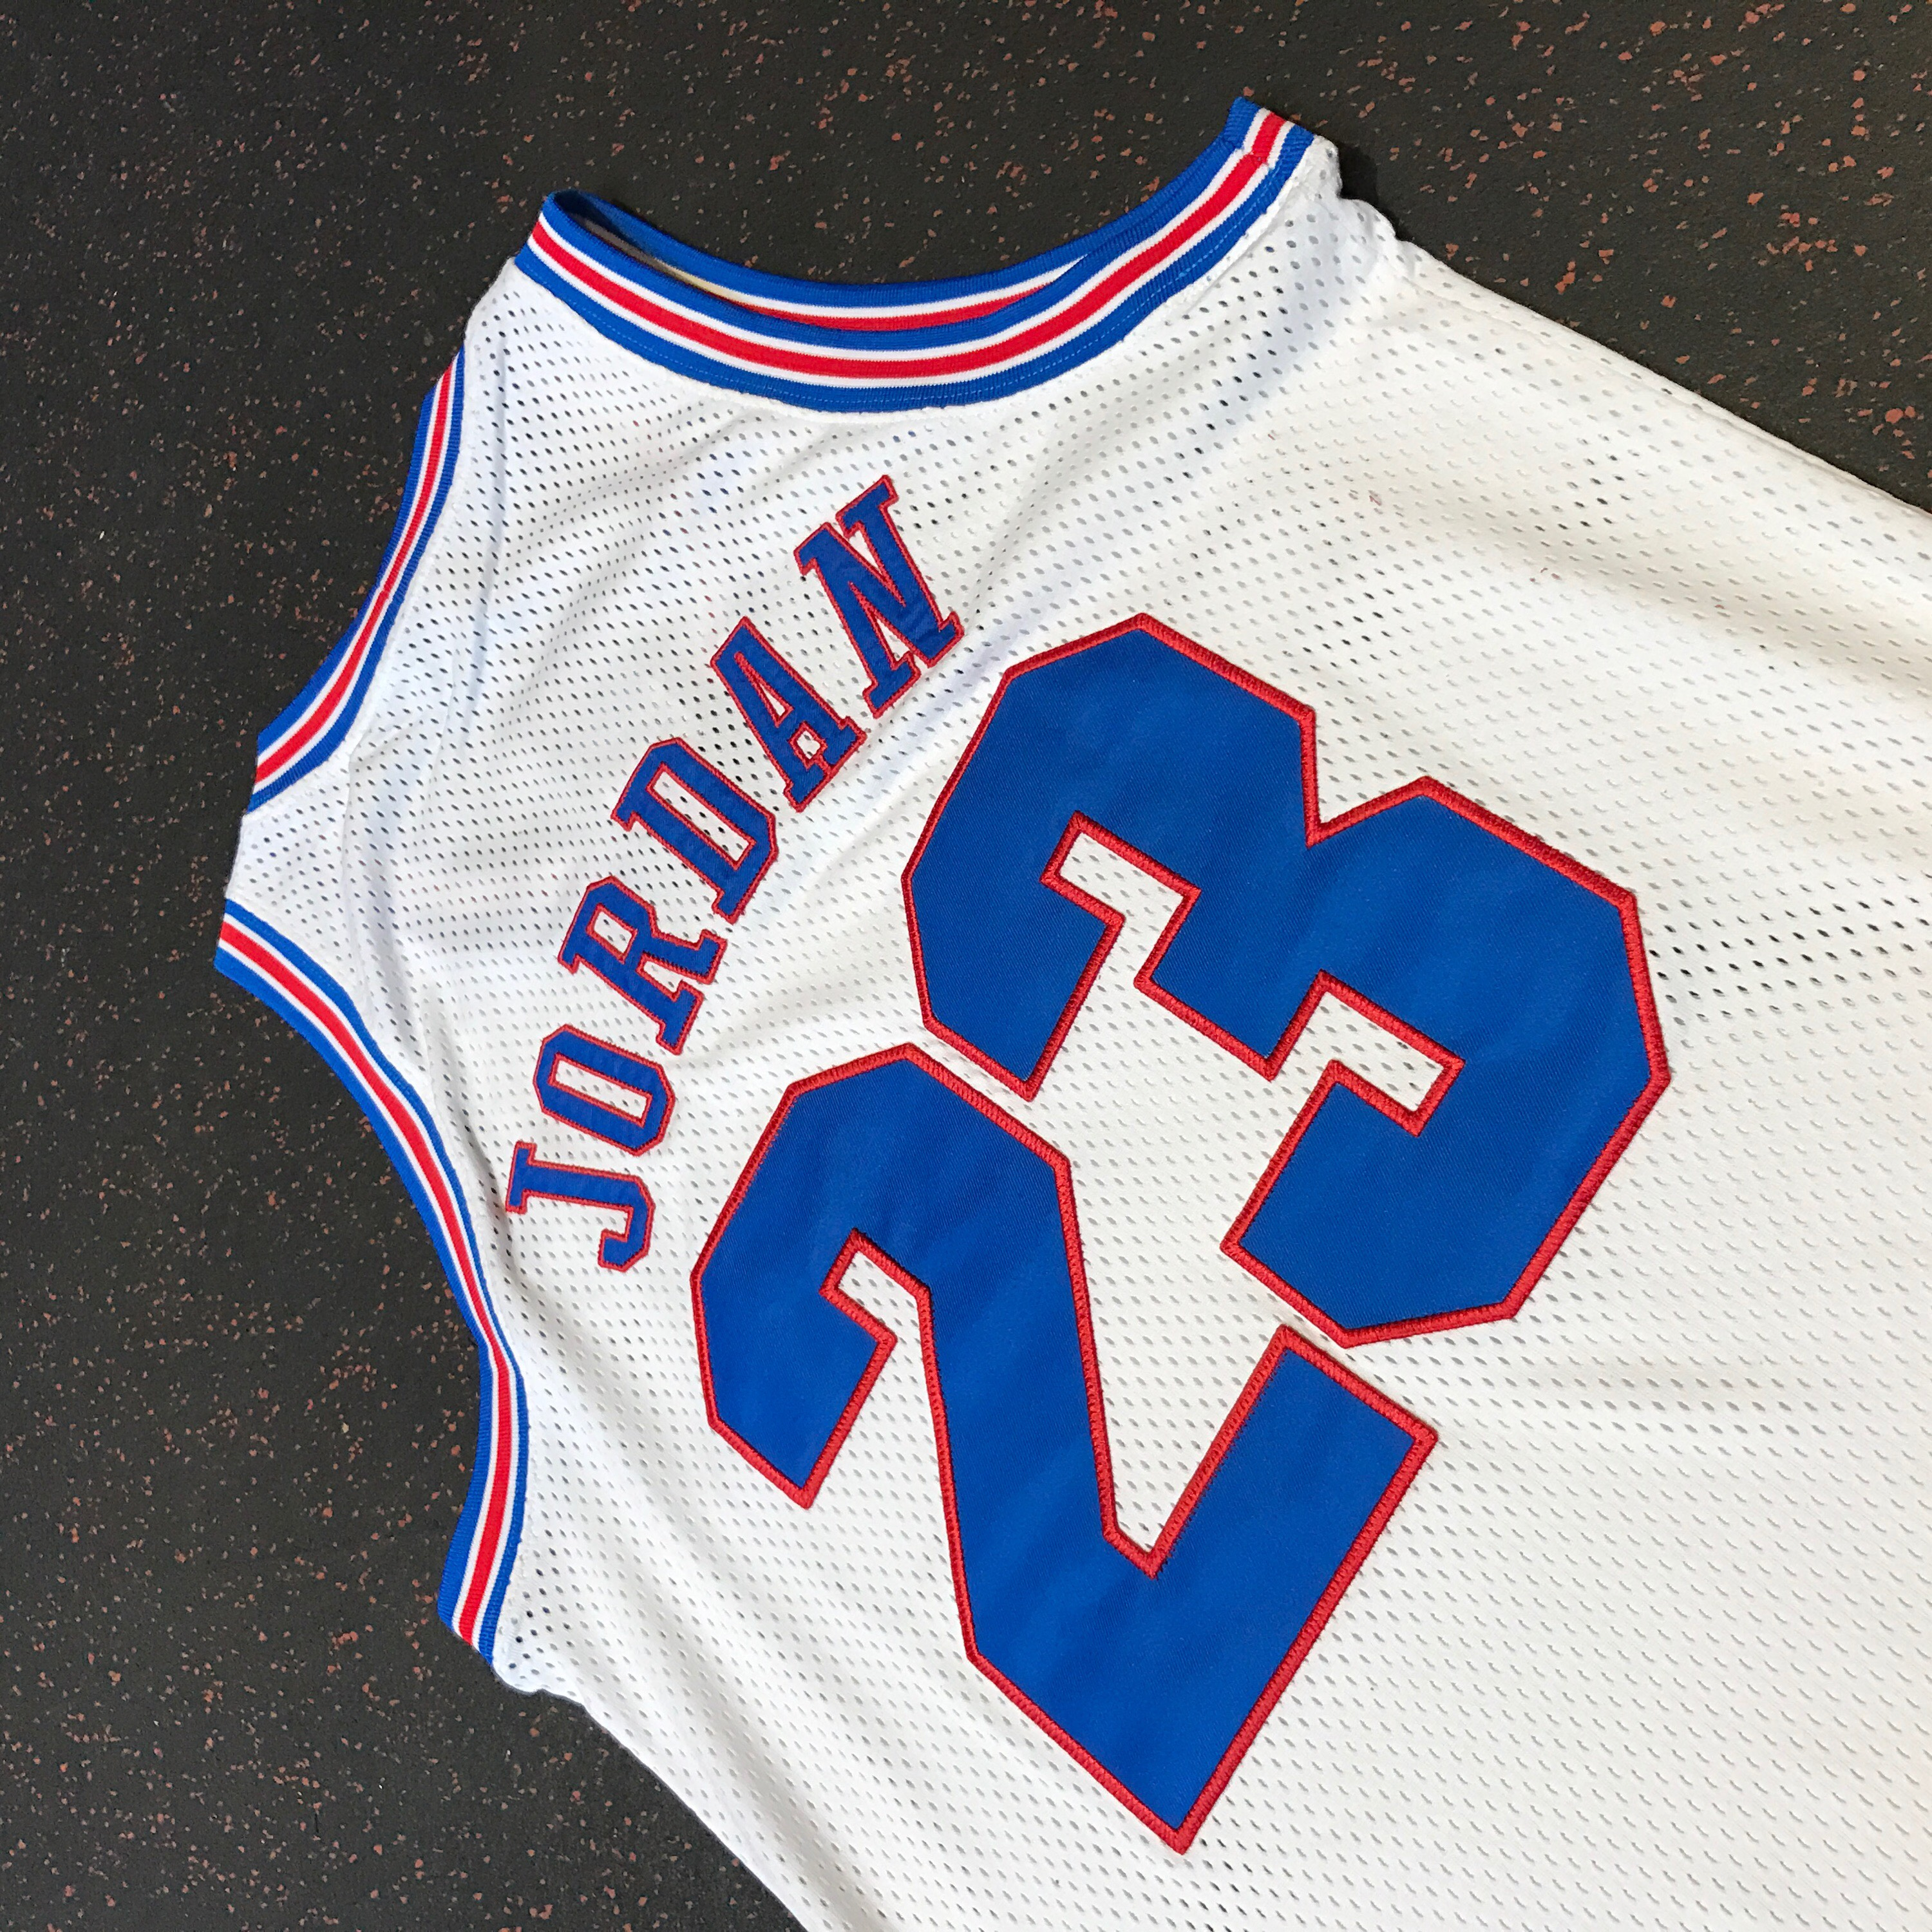 reputable site af7a0 96fea Michael Jordan Space Jam Jersey